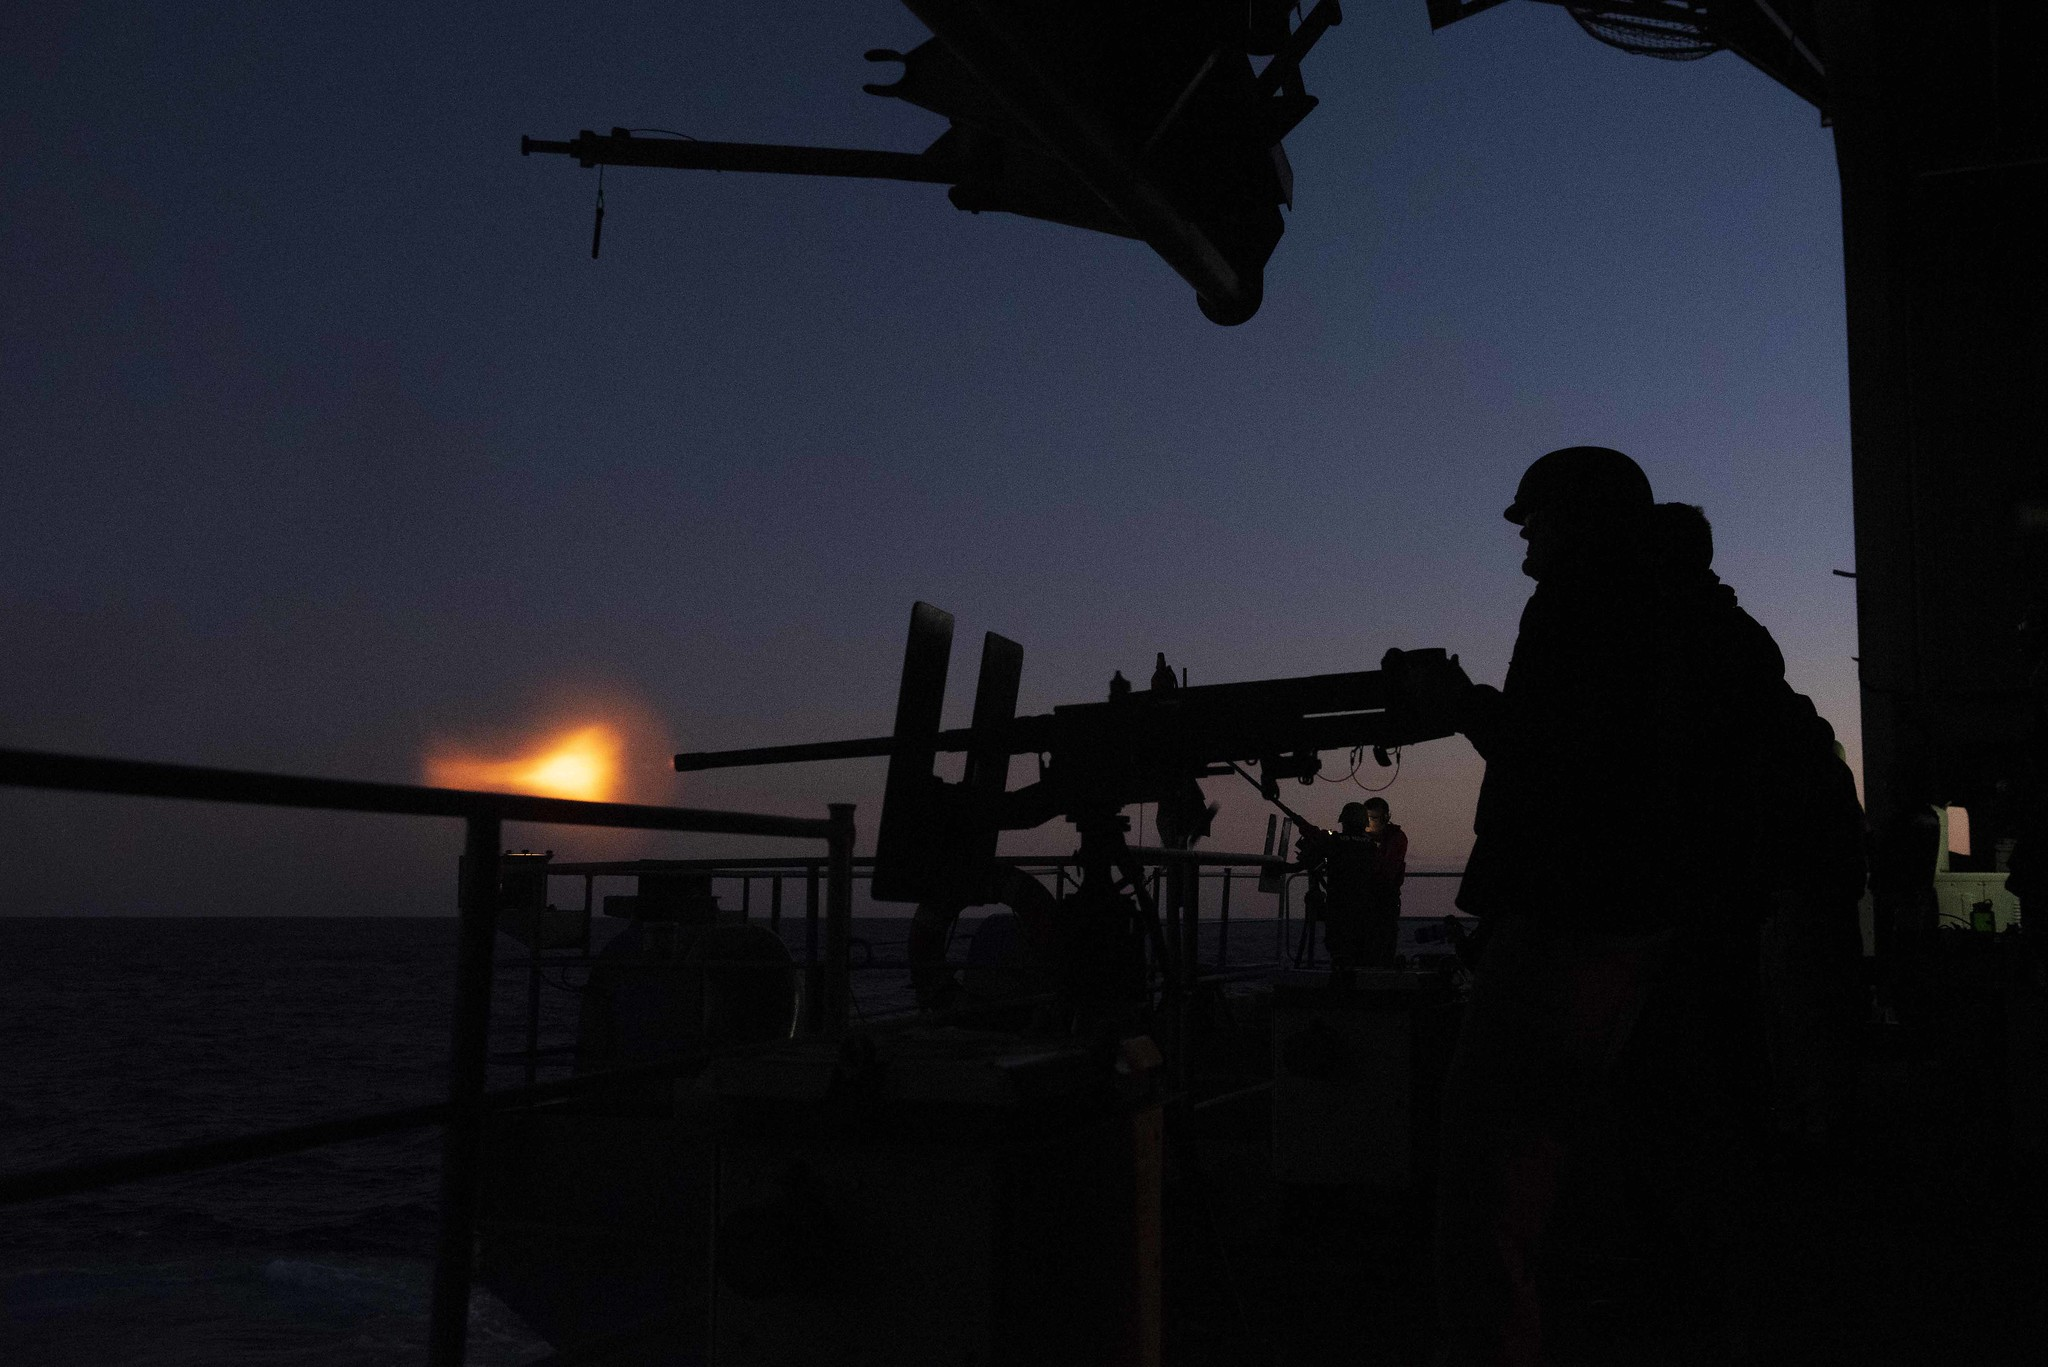 Sailors fire a .50-caliber machine gun Nov. 22, 2019, during a live-fire exercise on the fantail of the Nimitz-class aircraft carrier USS Harry S. Truman (CVN 75) in the Atlantic Ocean. (Mass Communication Specialist Seaman Victoria Sutton/Navy)